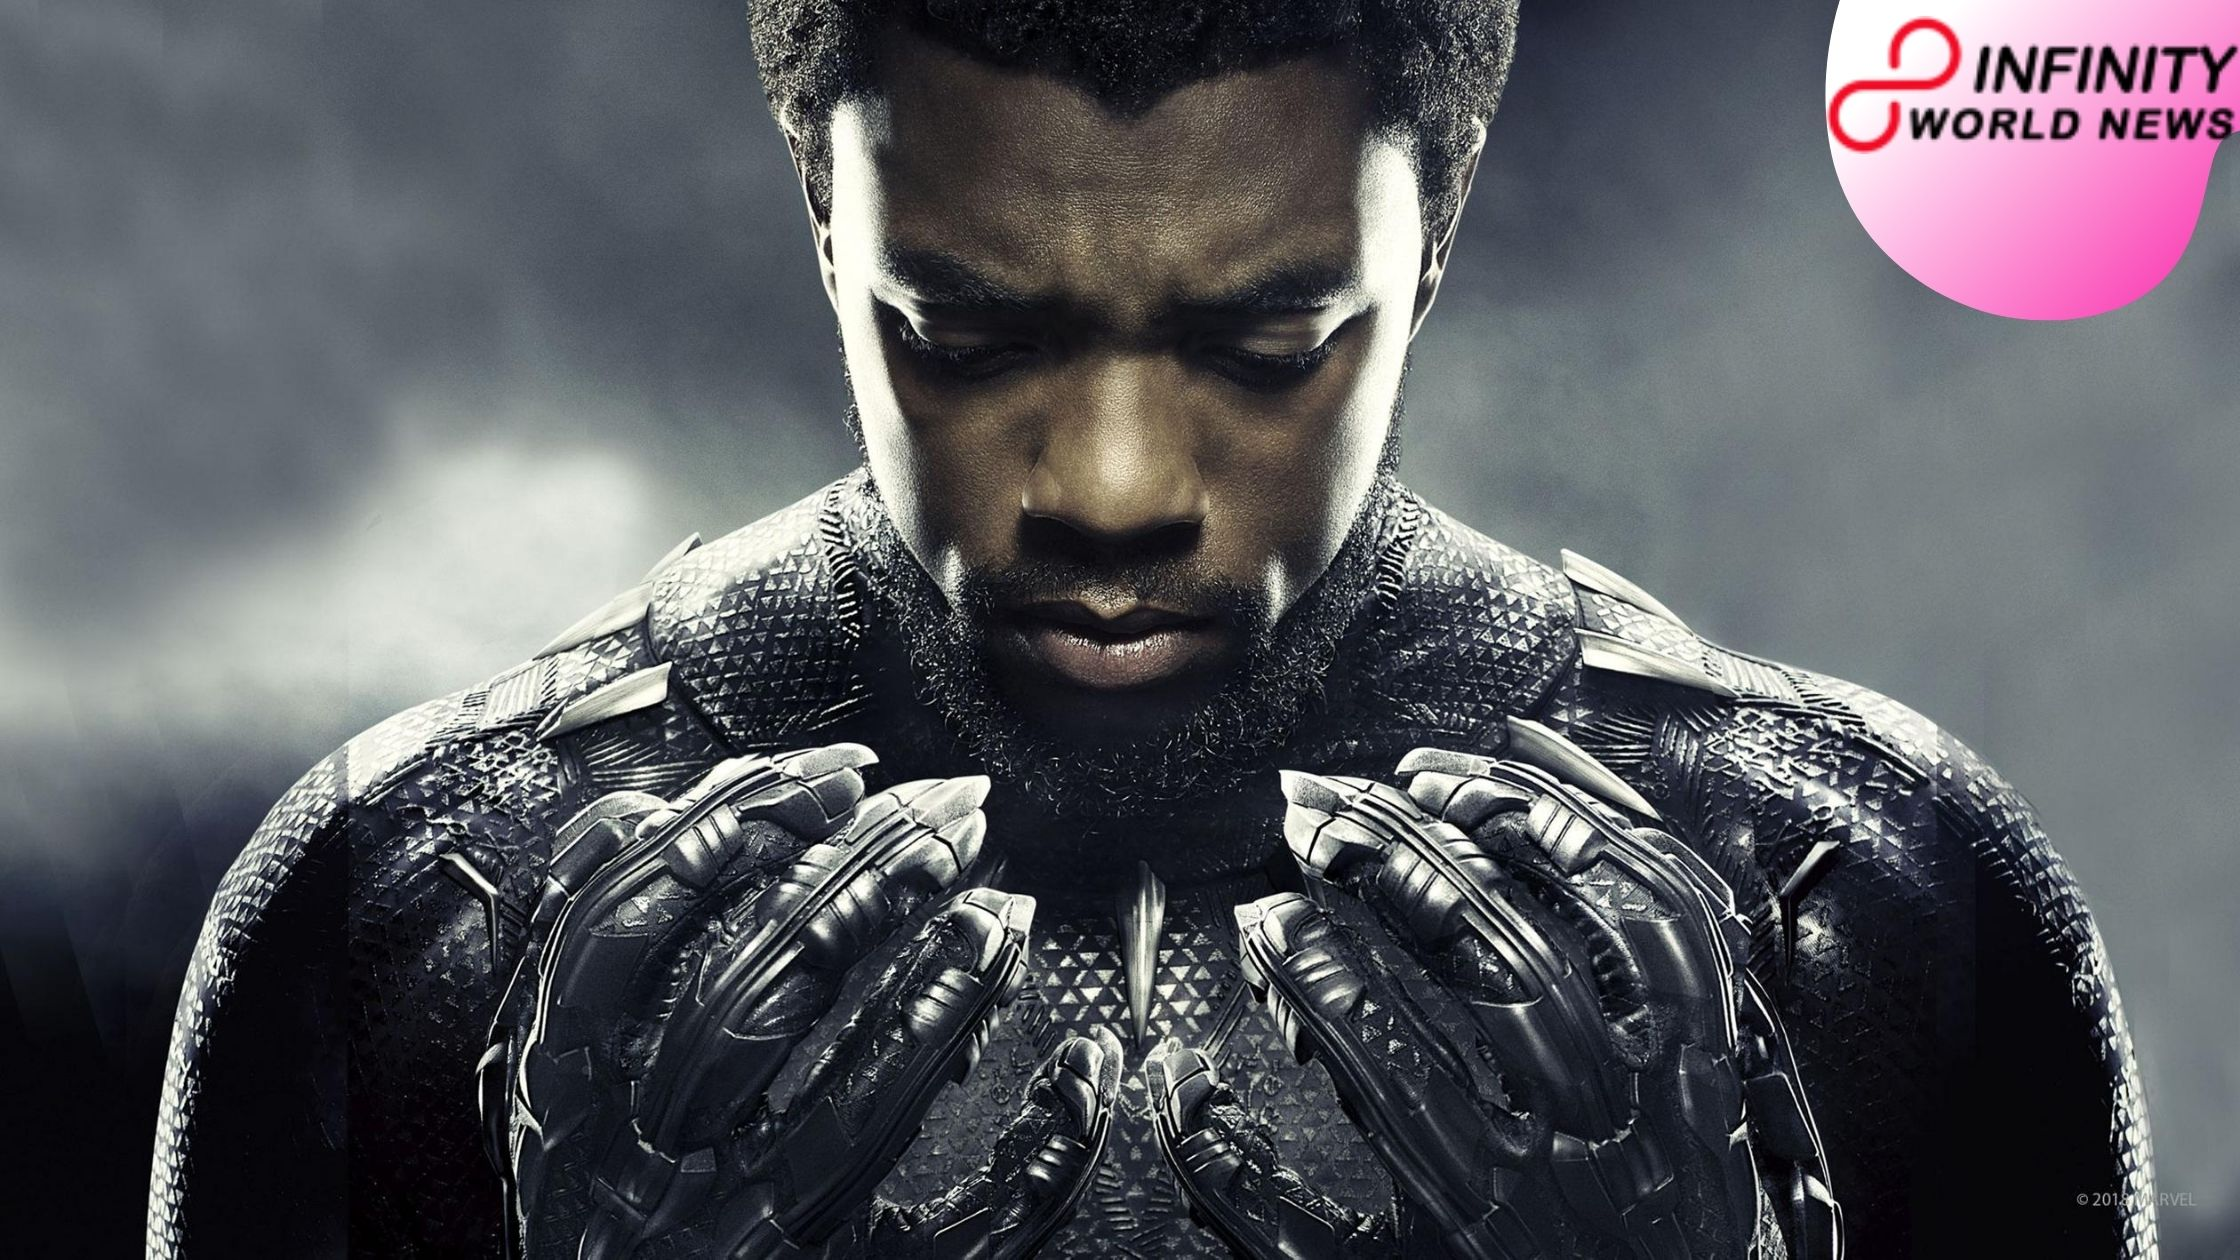 'Black Panther' Star Chadwick Boseman Falls of Cancer at the age of 43